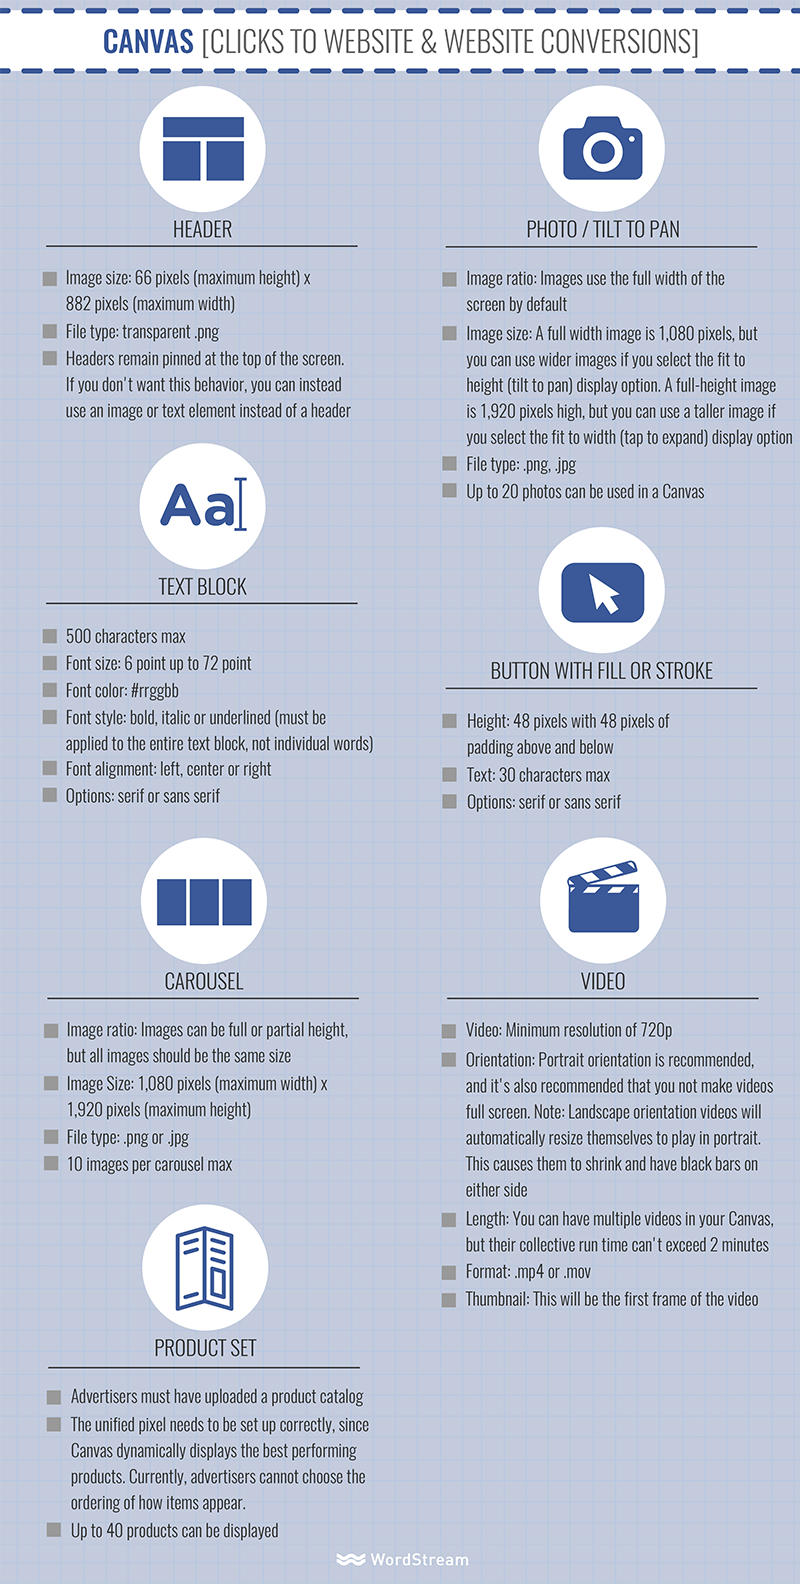 Ultimate Facebook Ad Types Cheat Sheet (With images